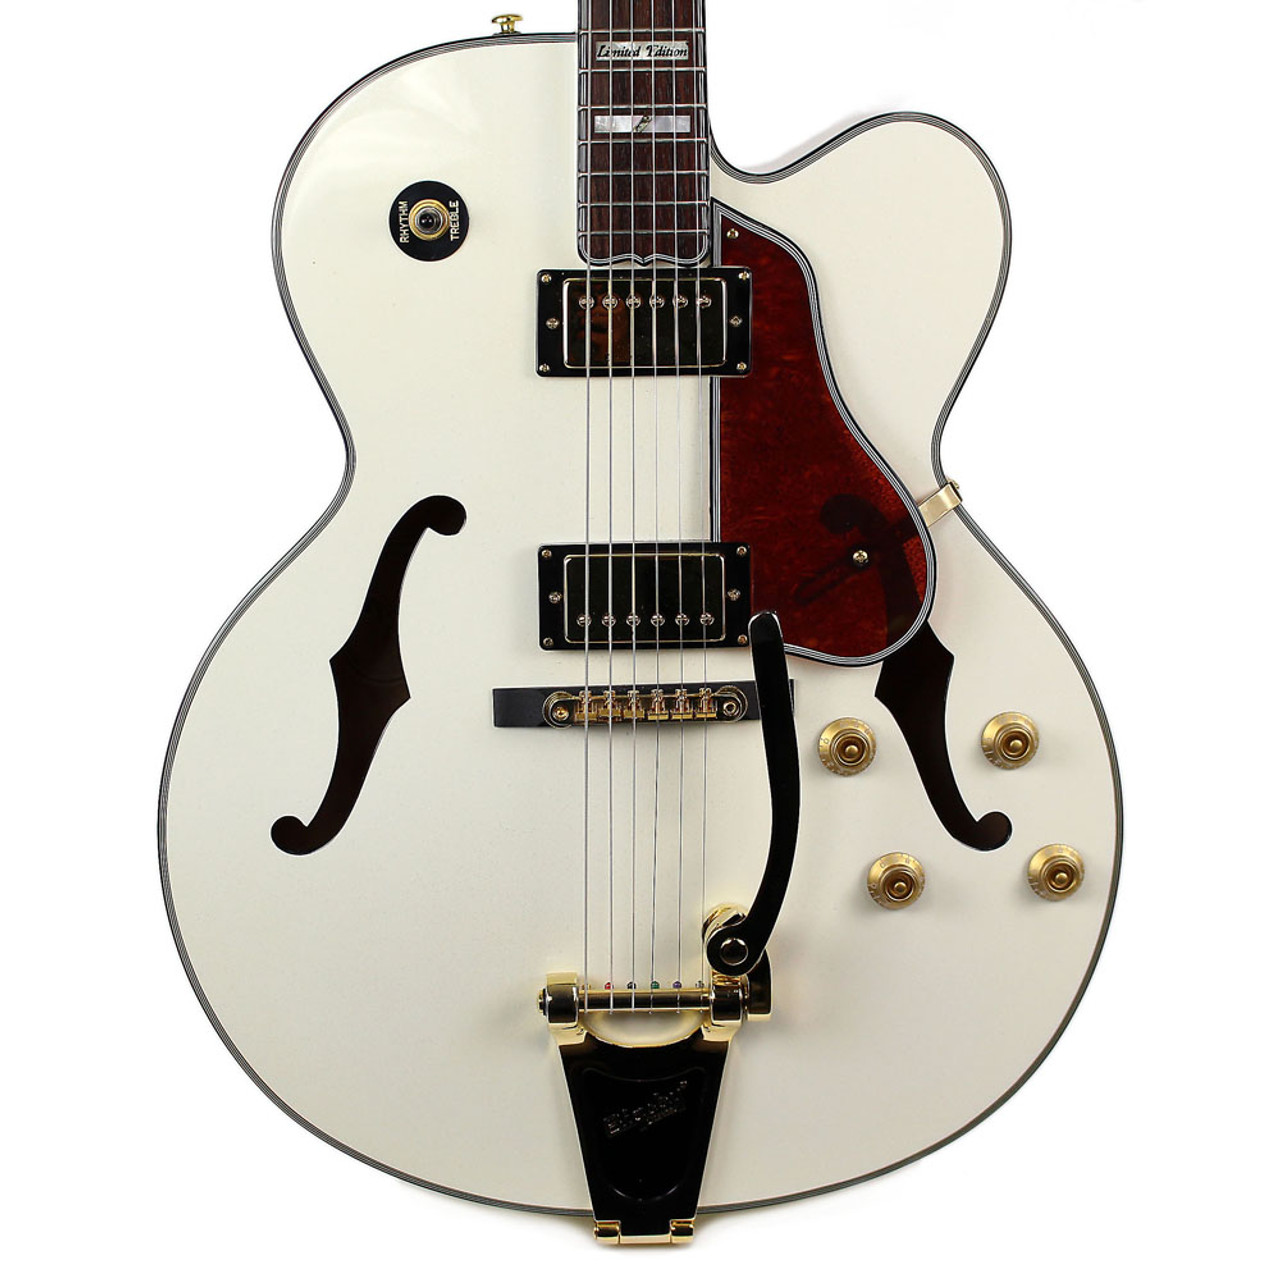 small resolution of used samick lasalle greg bennet jz2 ltd electric guitar pearl white cream city music